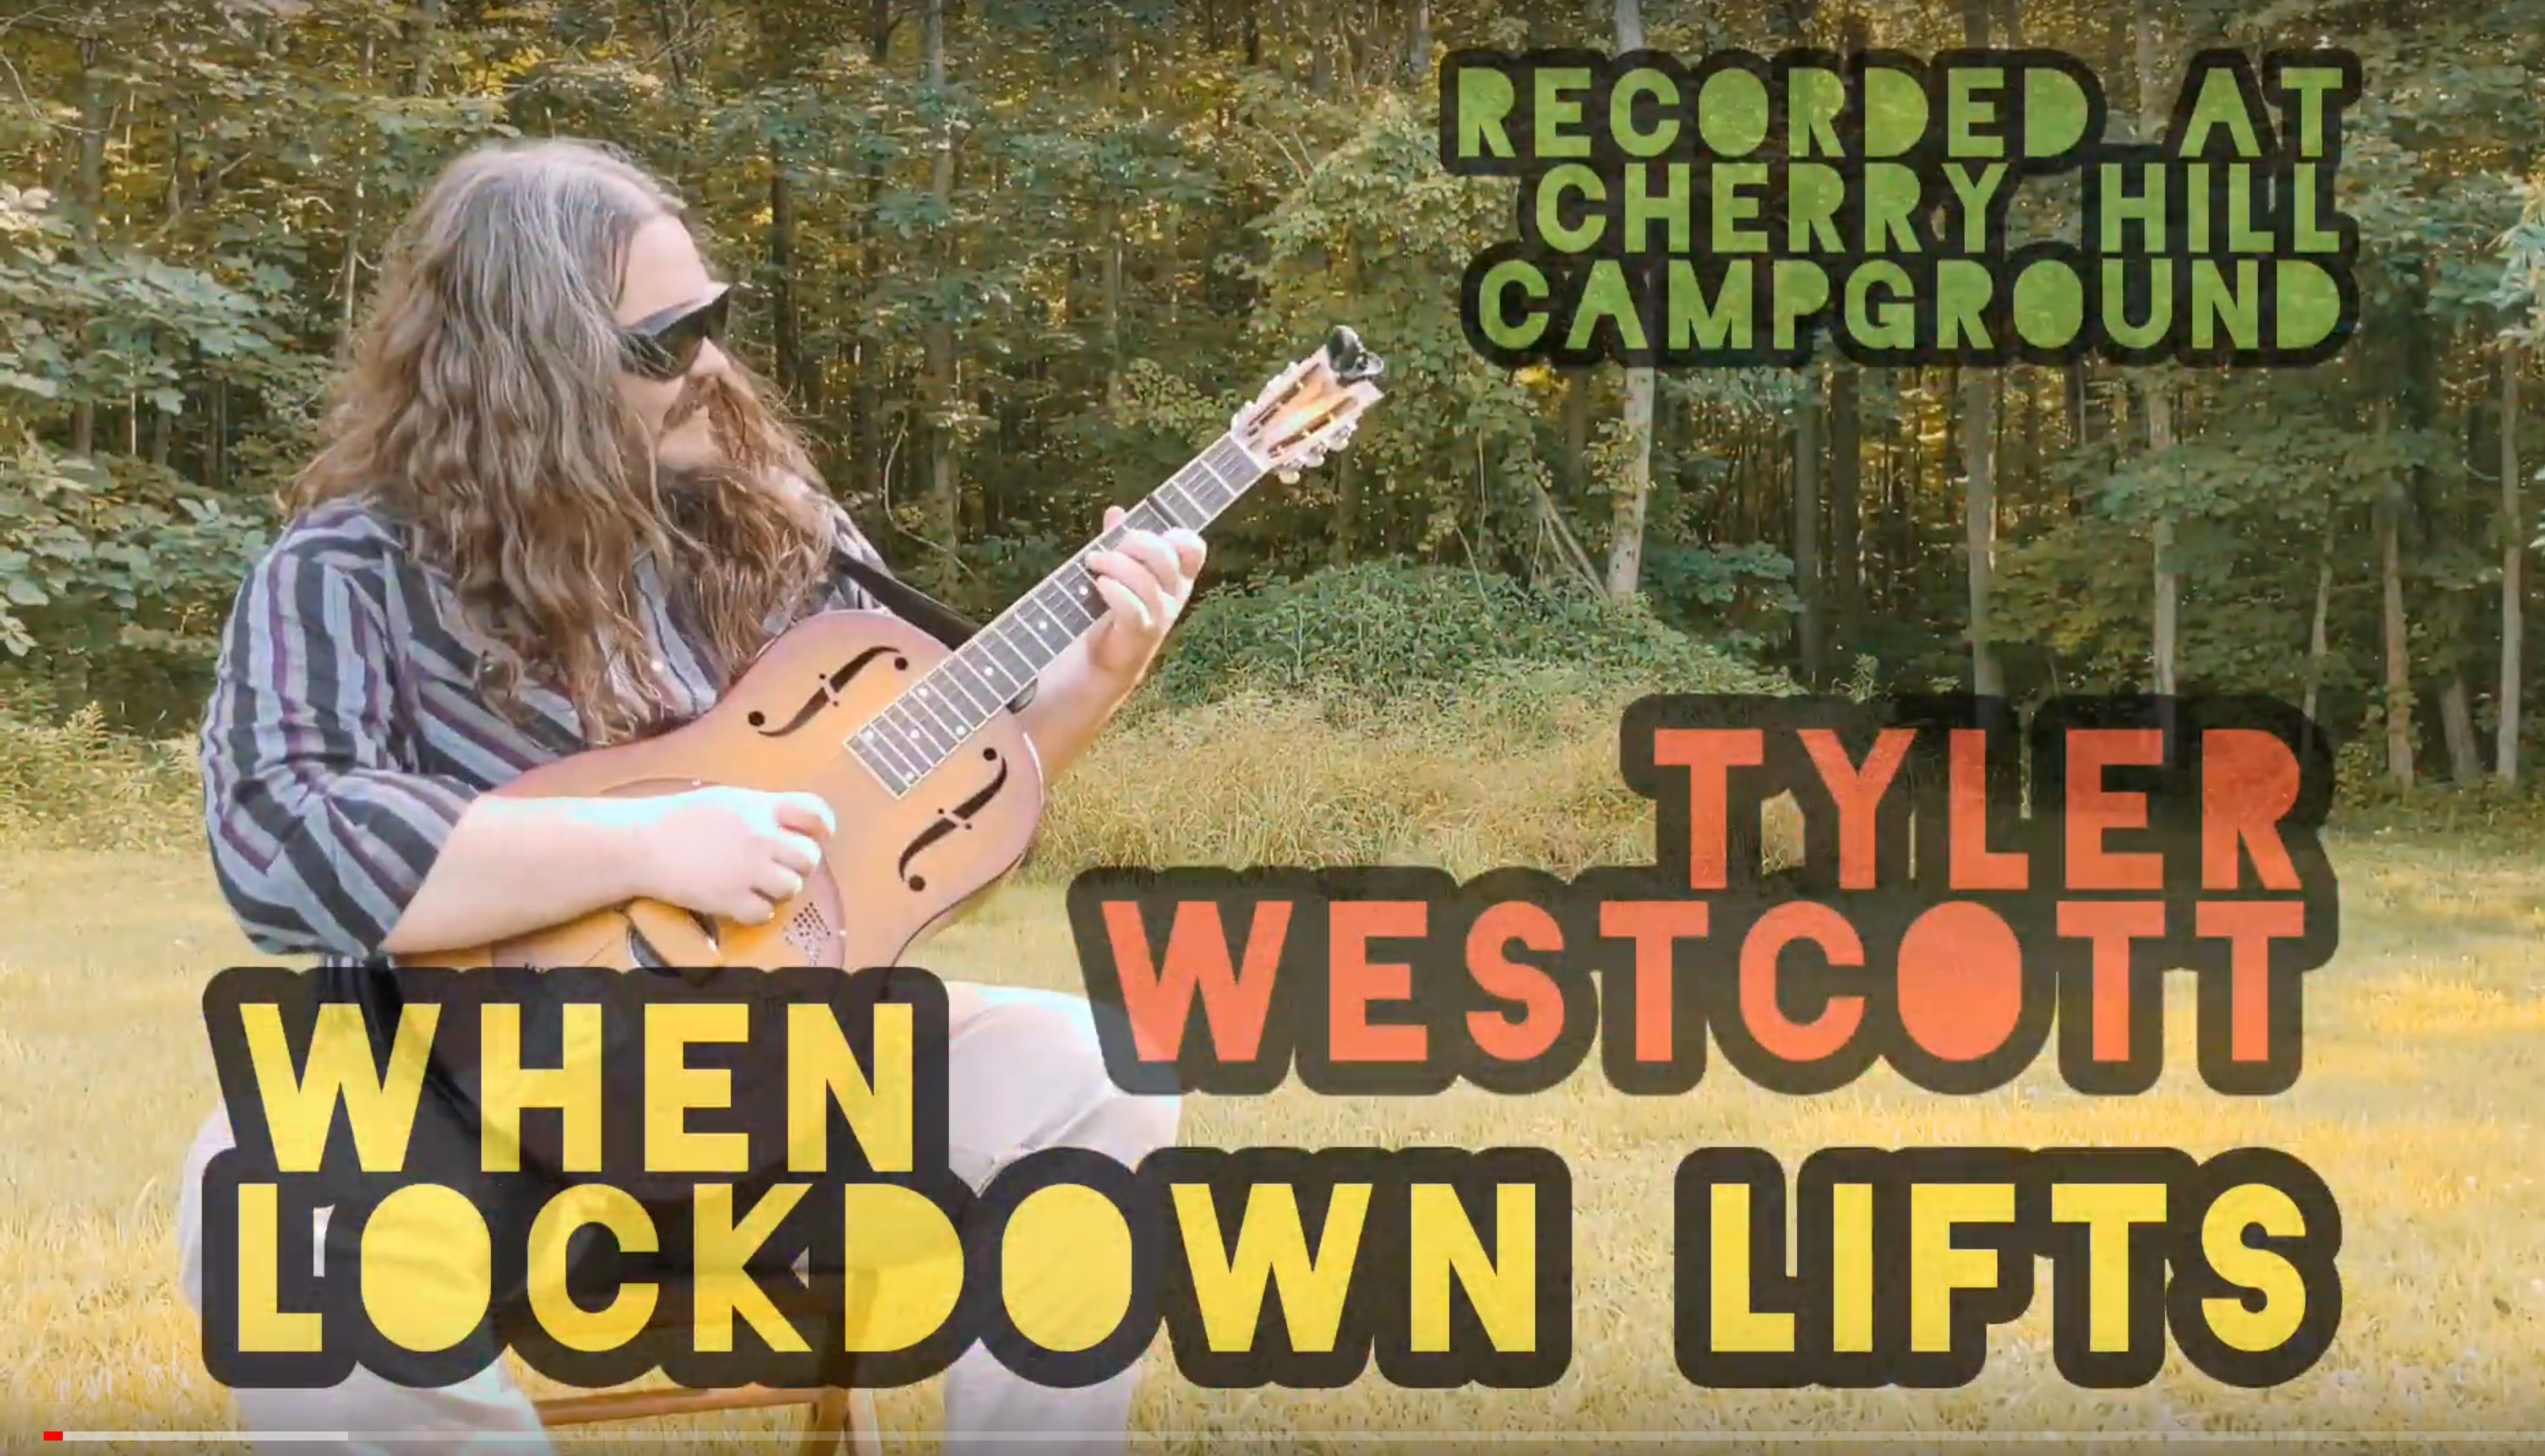 When the lockdown lifts … with Tyler Westcott